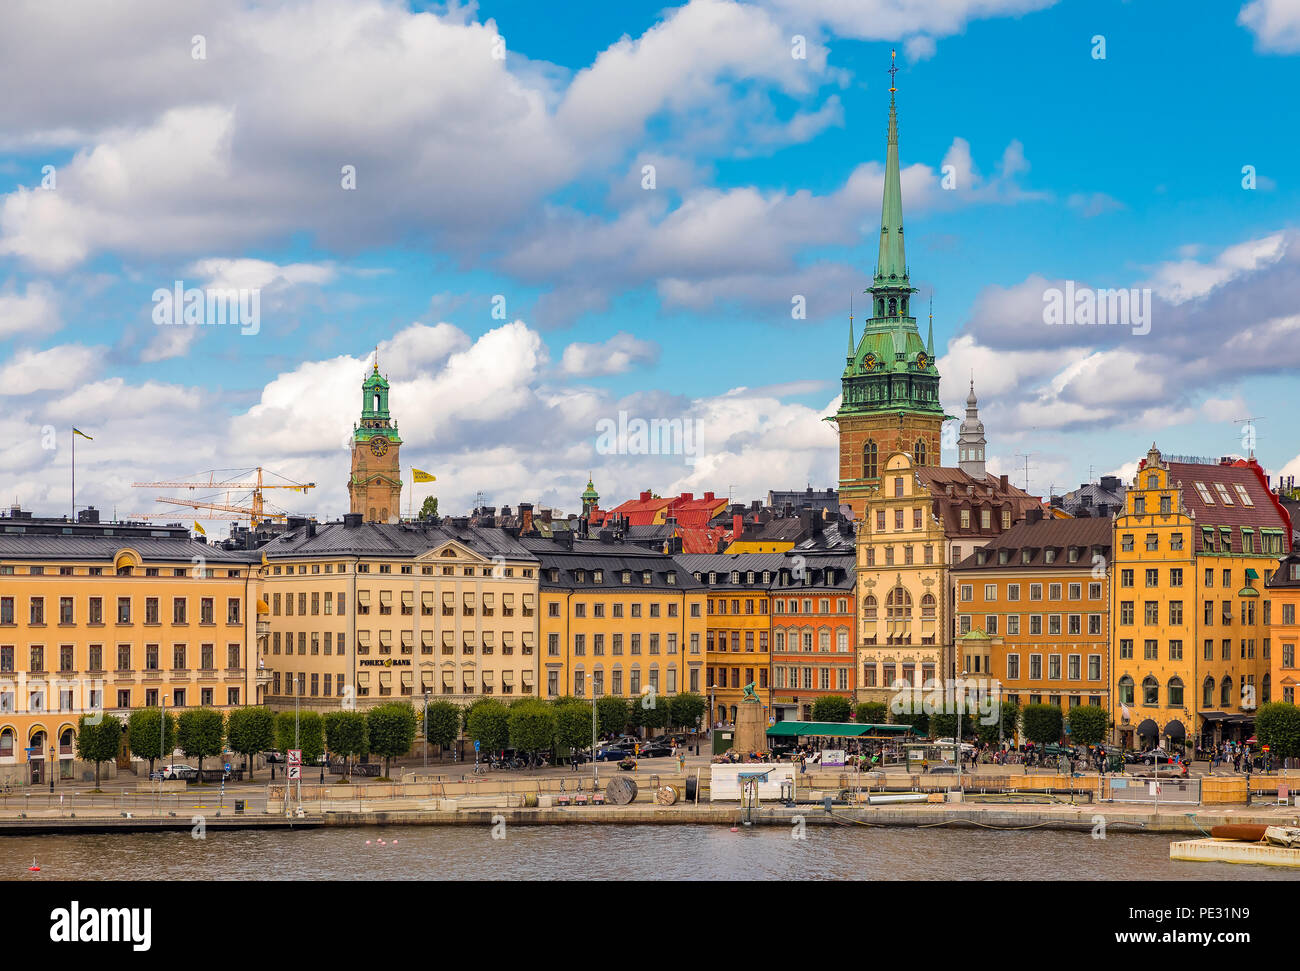 Stockholm, Sweden - August 10, 2017:  Traditional gothic buildings on Kornhamnstorg square, Harbour Square, in the old town, Gamla Stan - Stock Image